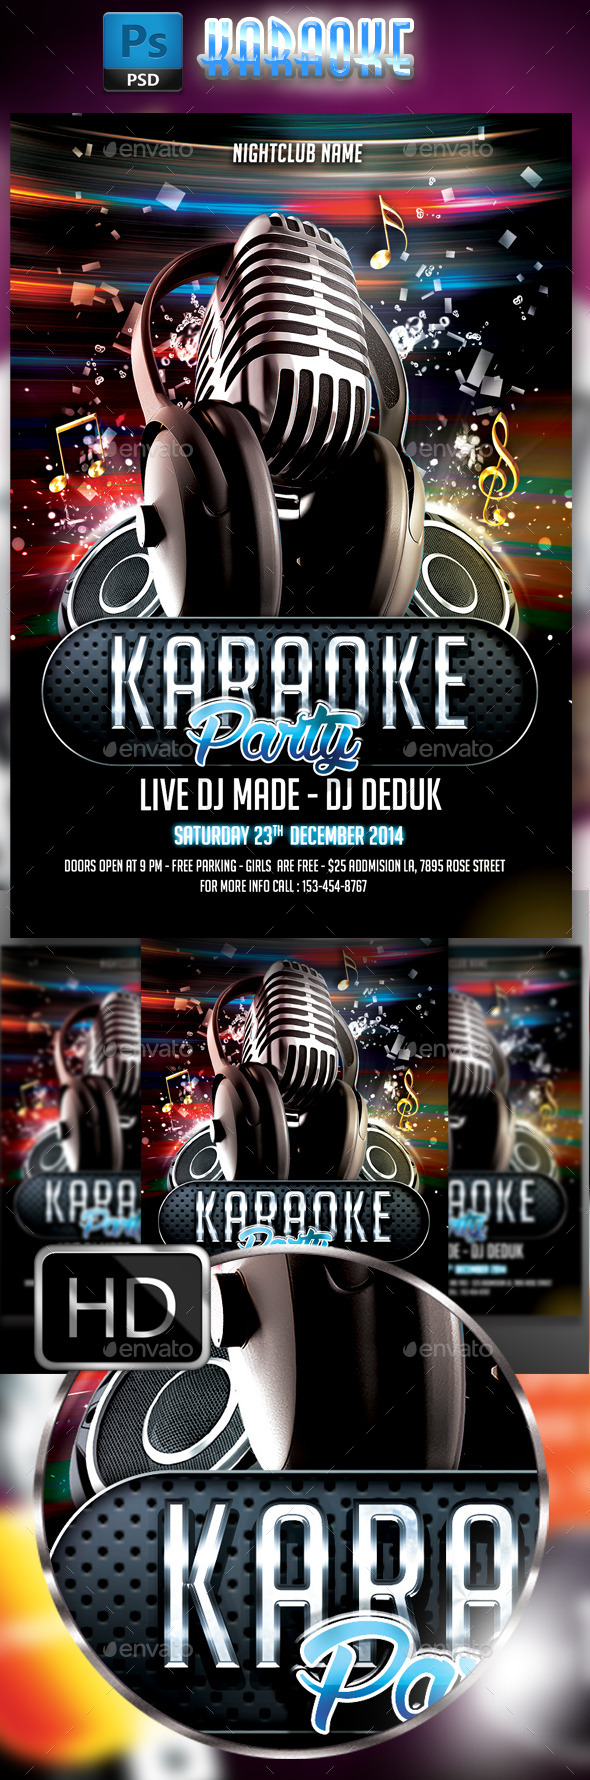 GraphicRiver Karaoke Flyer #3 8819610